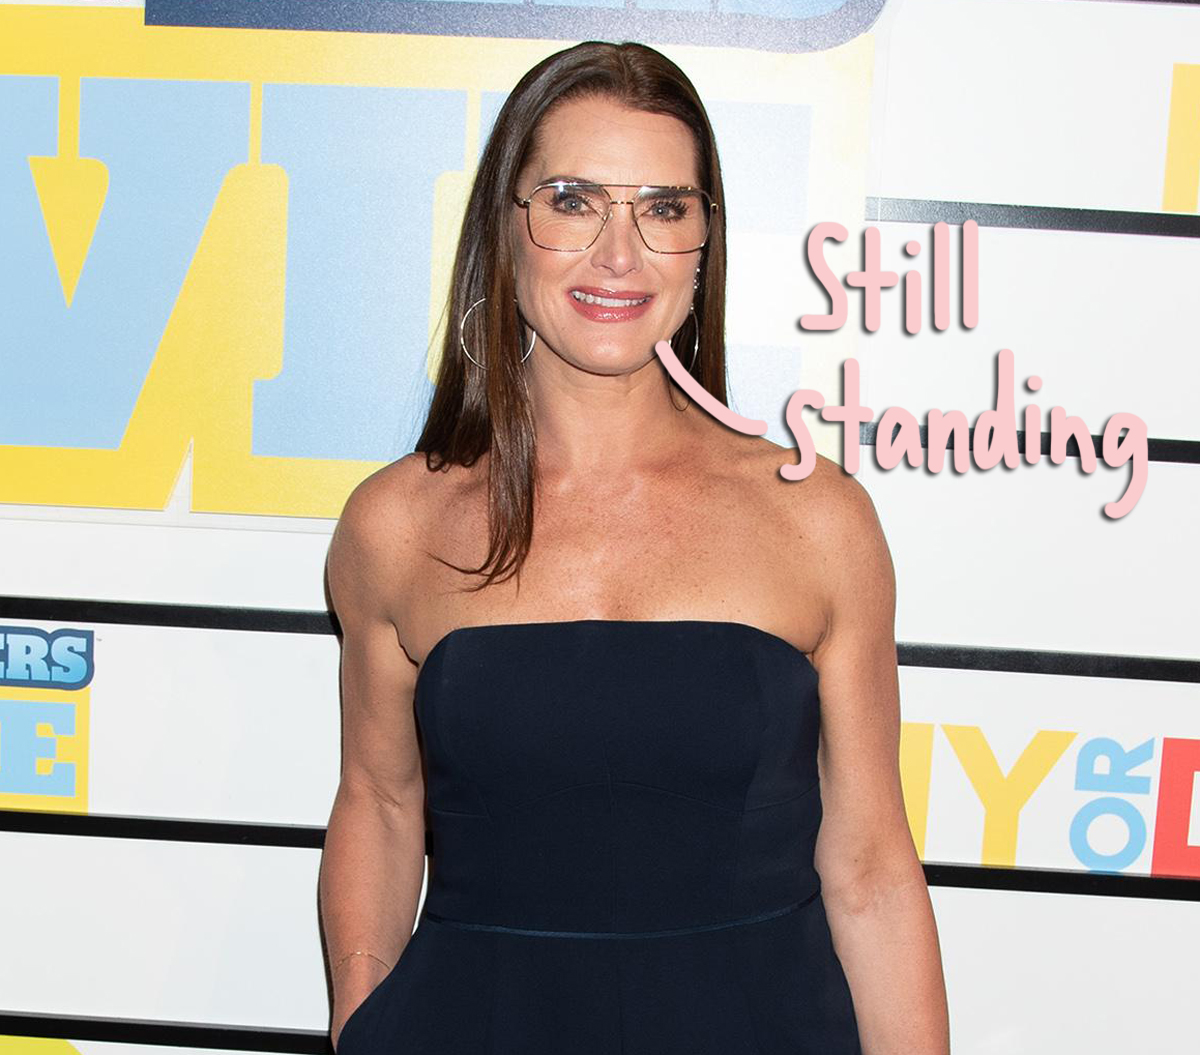 Brooke Shields Details Her Fight To Walk Again After Freak Accident!